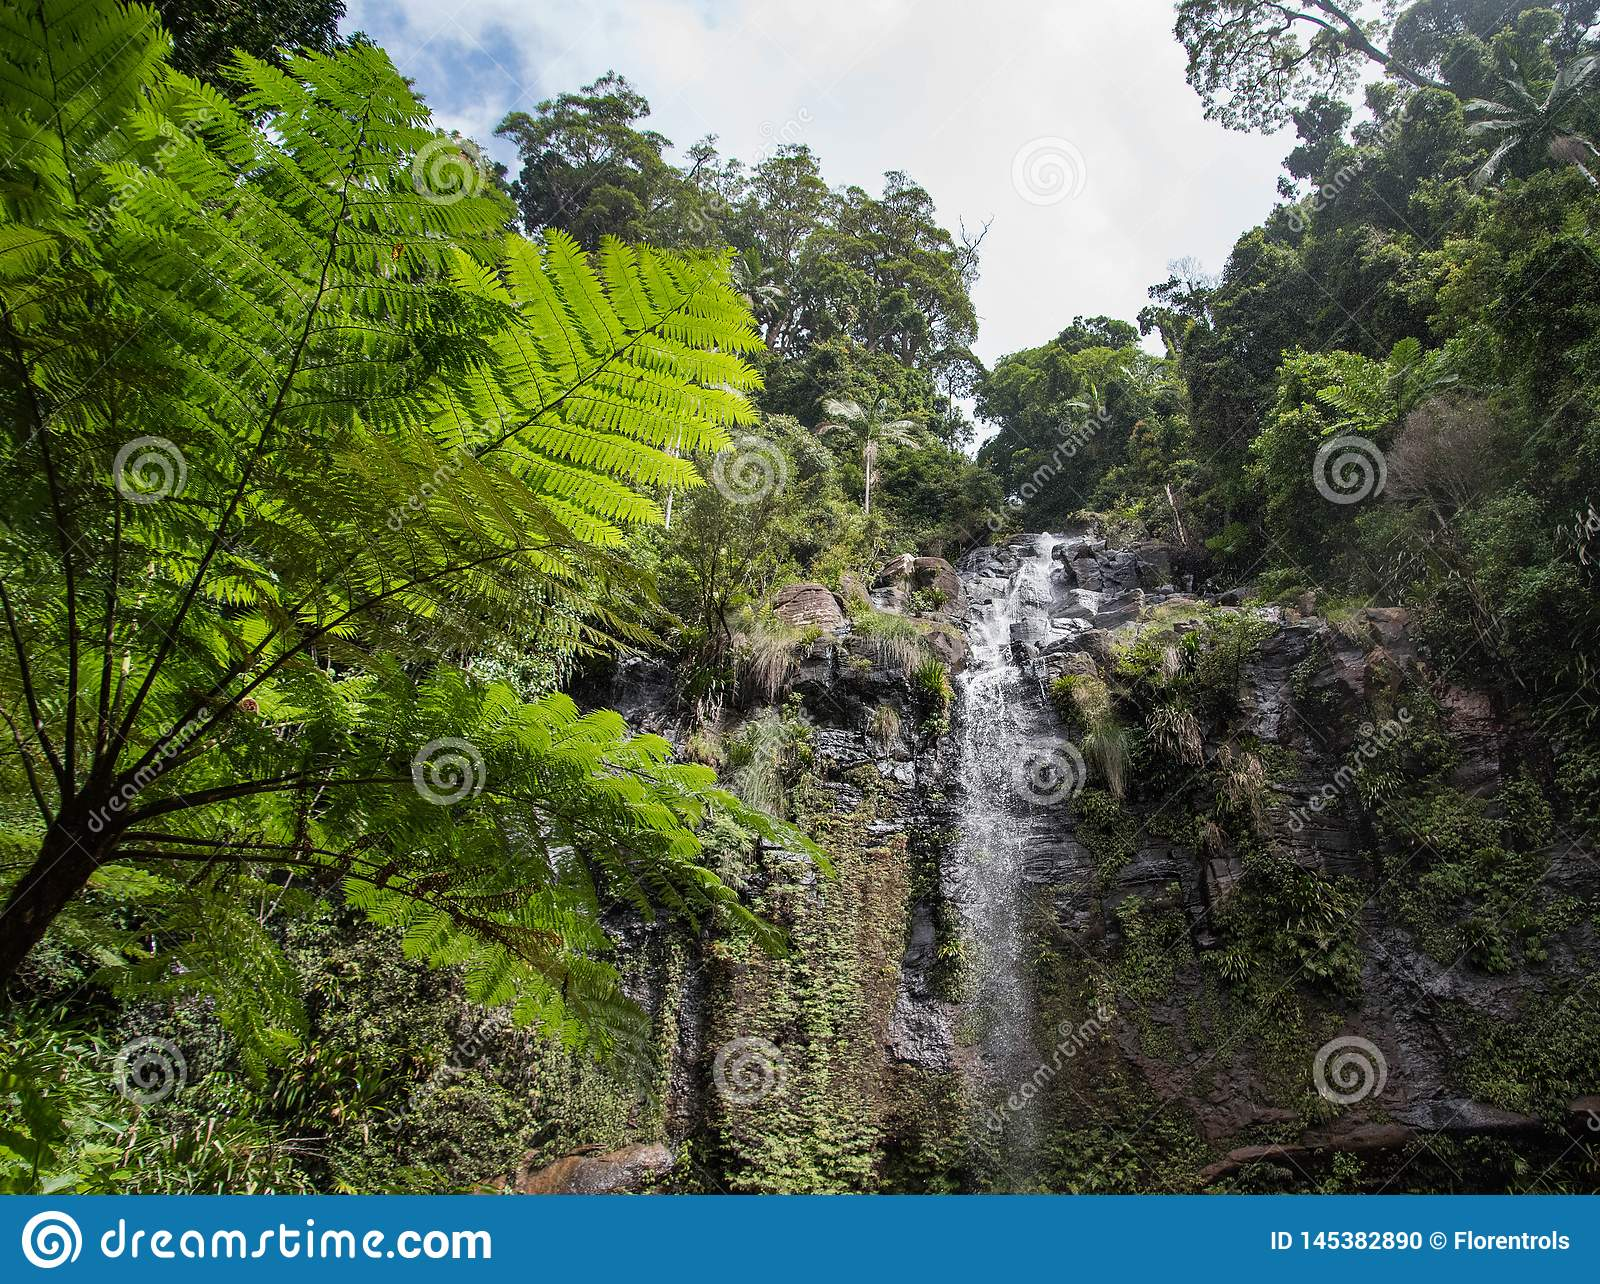 Beautiful landscape view of a forest with nice trees and waterfall